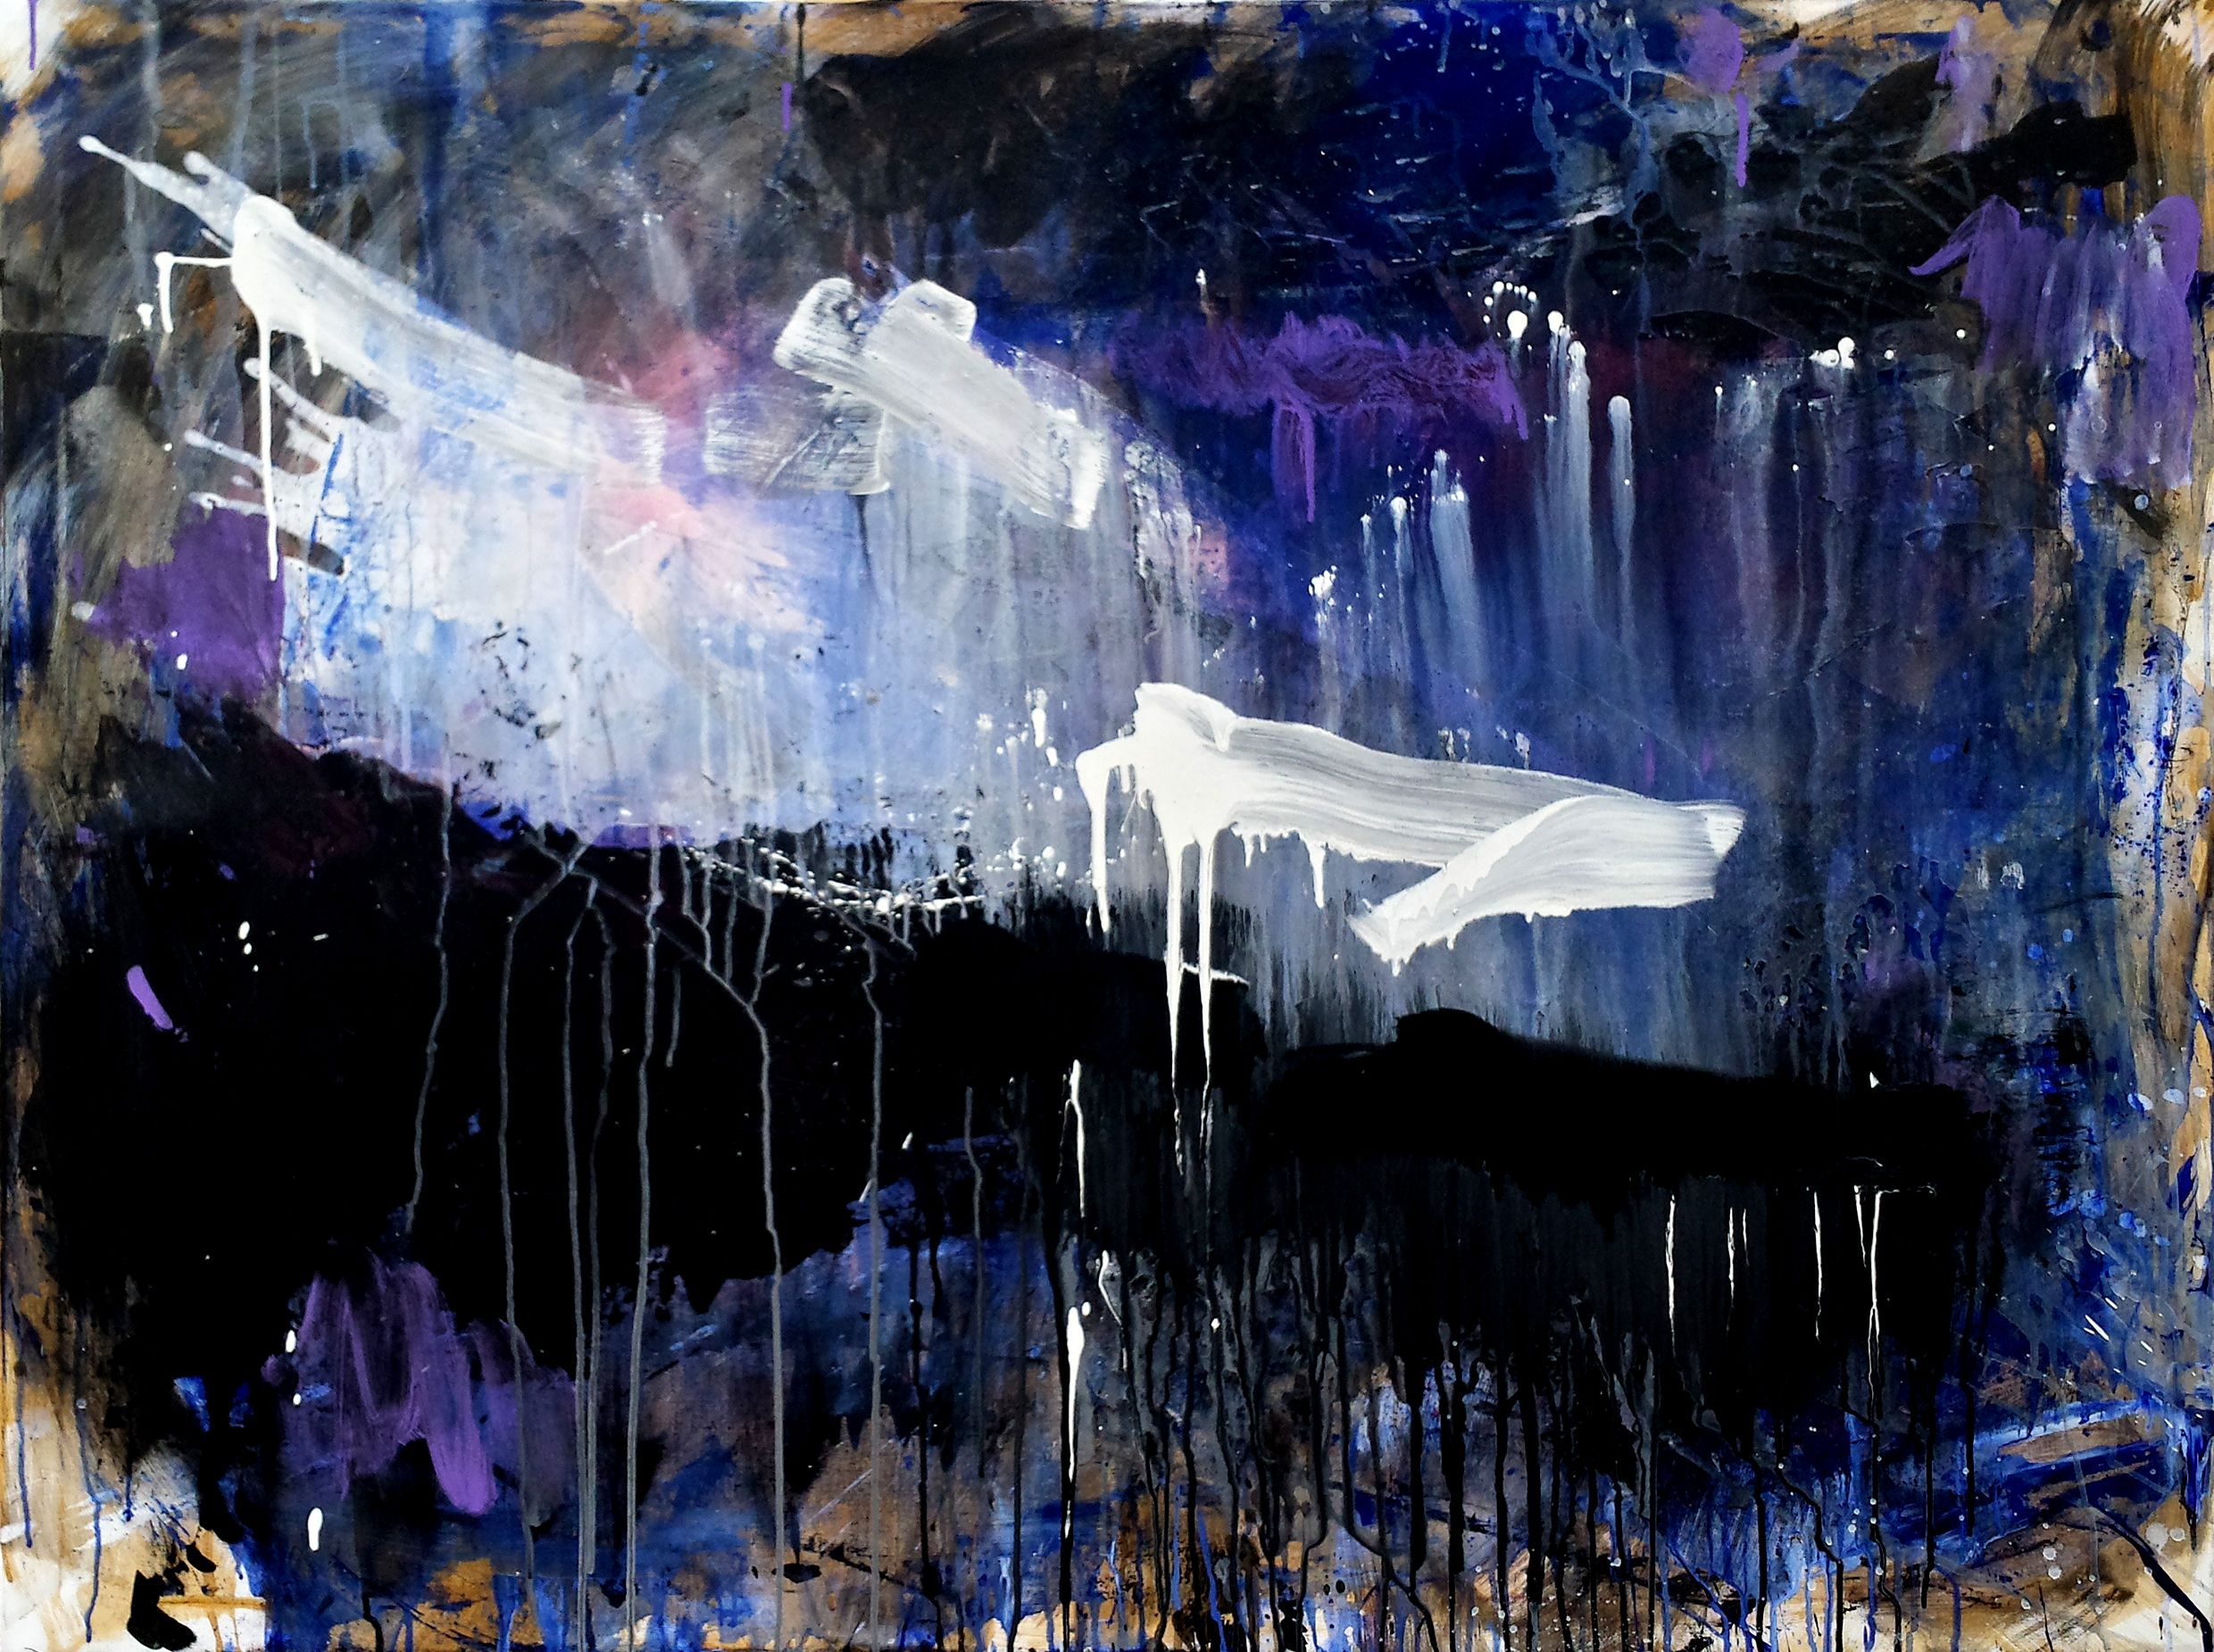 21.02.2014, ©Wolfgang Kahle, 120 x 140 cm, mixed media on canvas